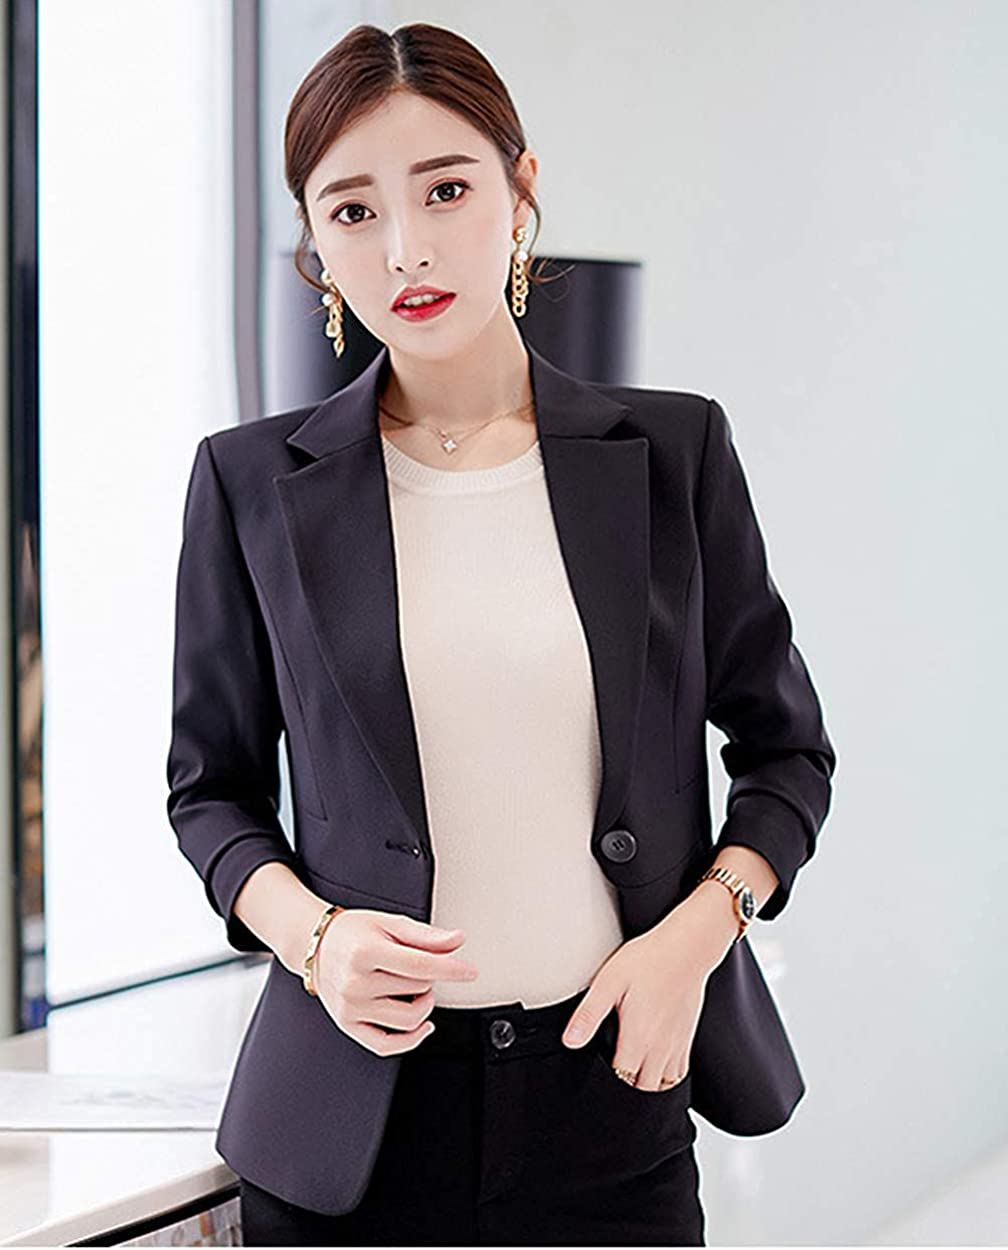 Uni-Wert Womens Blazer Casual Business Lapel Long Sleeve One Button Work Office Jacket